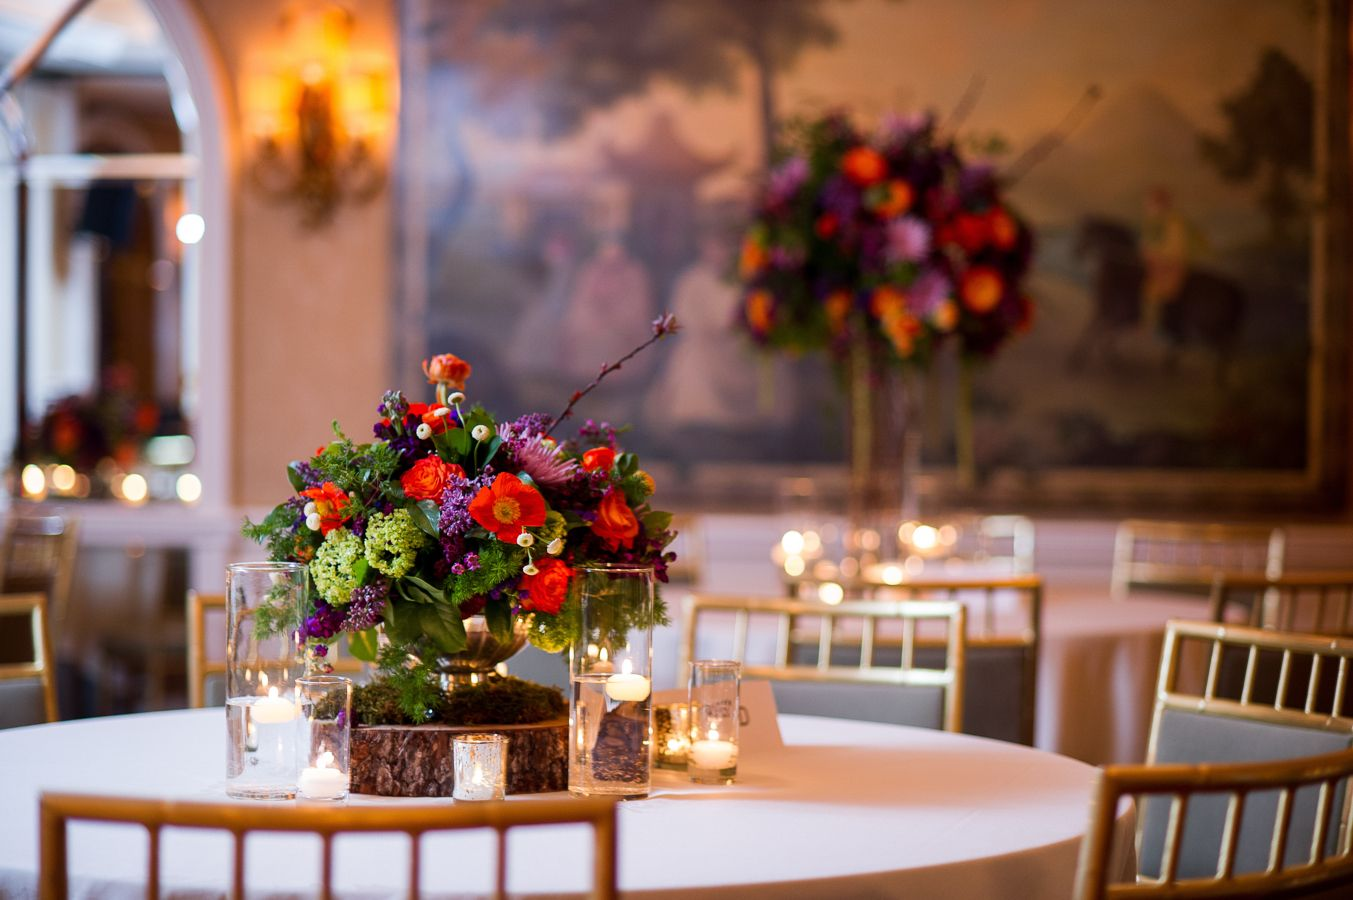 If color is your thing, this wedding is for you. If color is not your thing, prepare to have your mind changed by Branching Out Floral & Event Design. This wedding, captured beautifully by Amy Herfurth Photography, is a stunning display